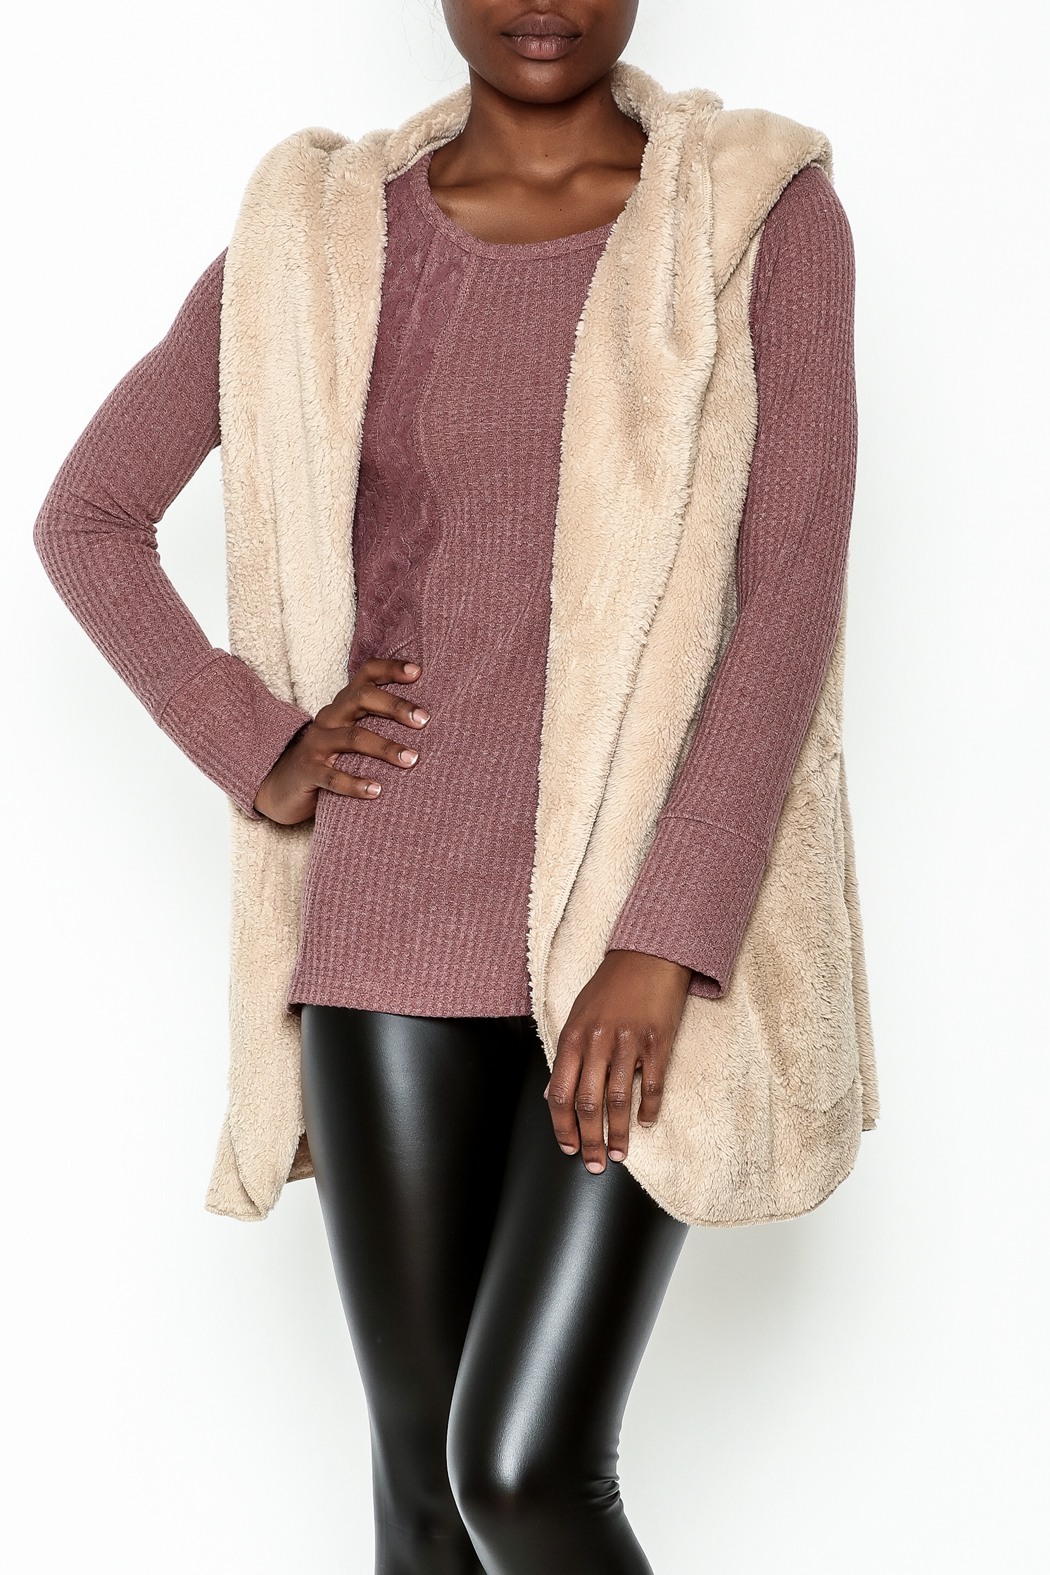 vanilla bay Fuzzy Hooded Vest from Wyckoff by Bedford Basket ...